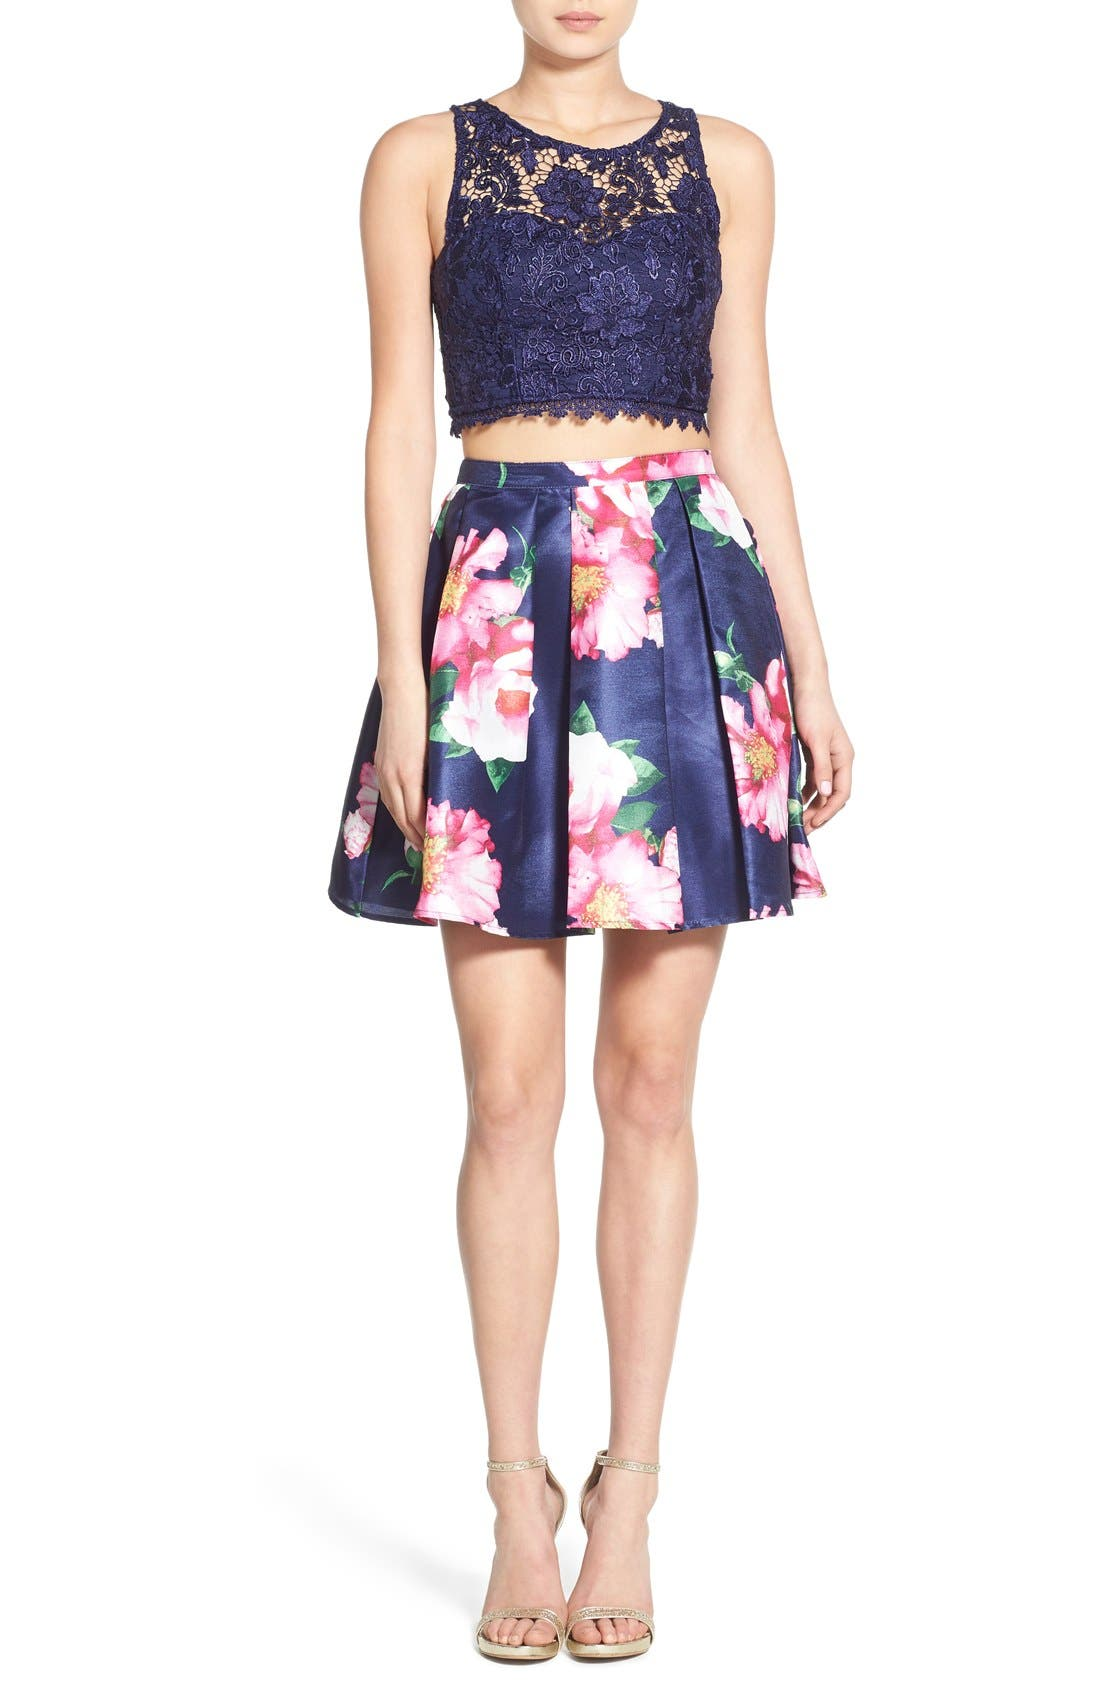 Main Image - Sequin Hearts Floral Print Lace Two-Piece Dress